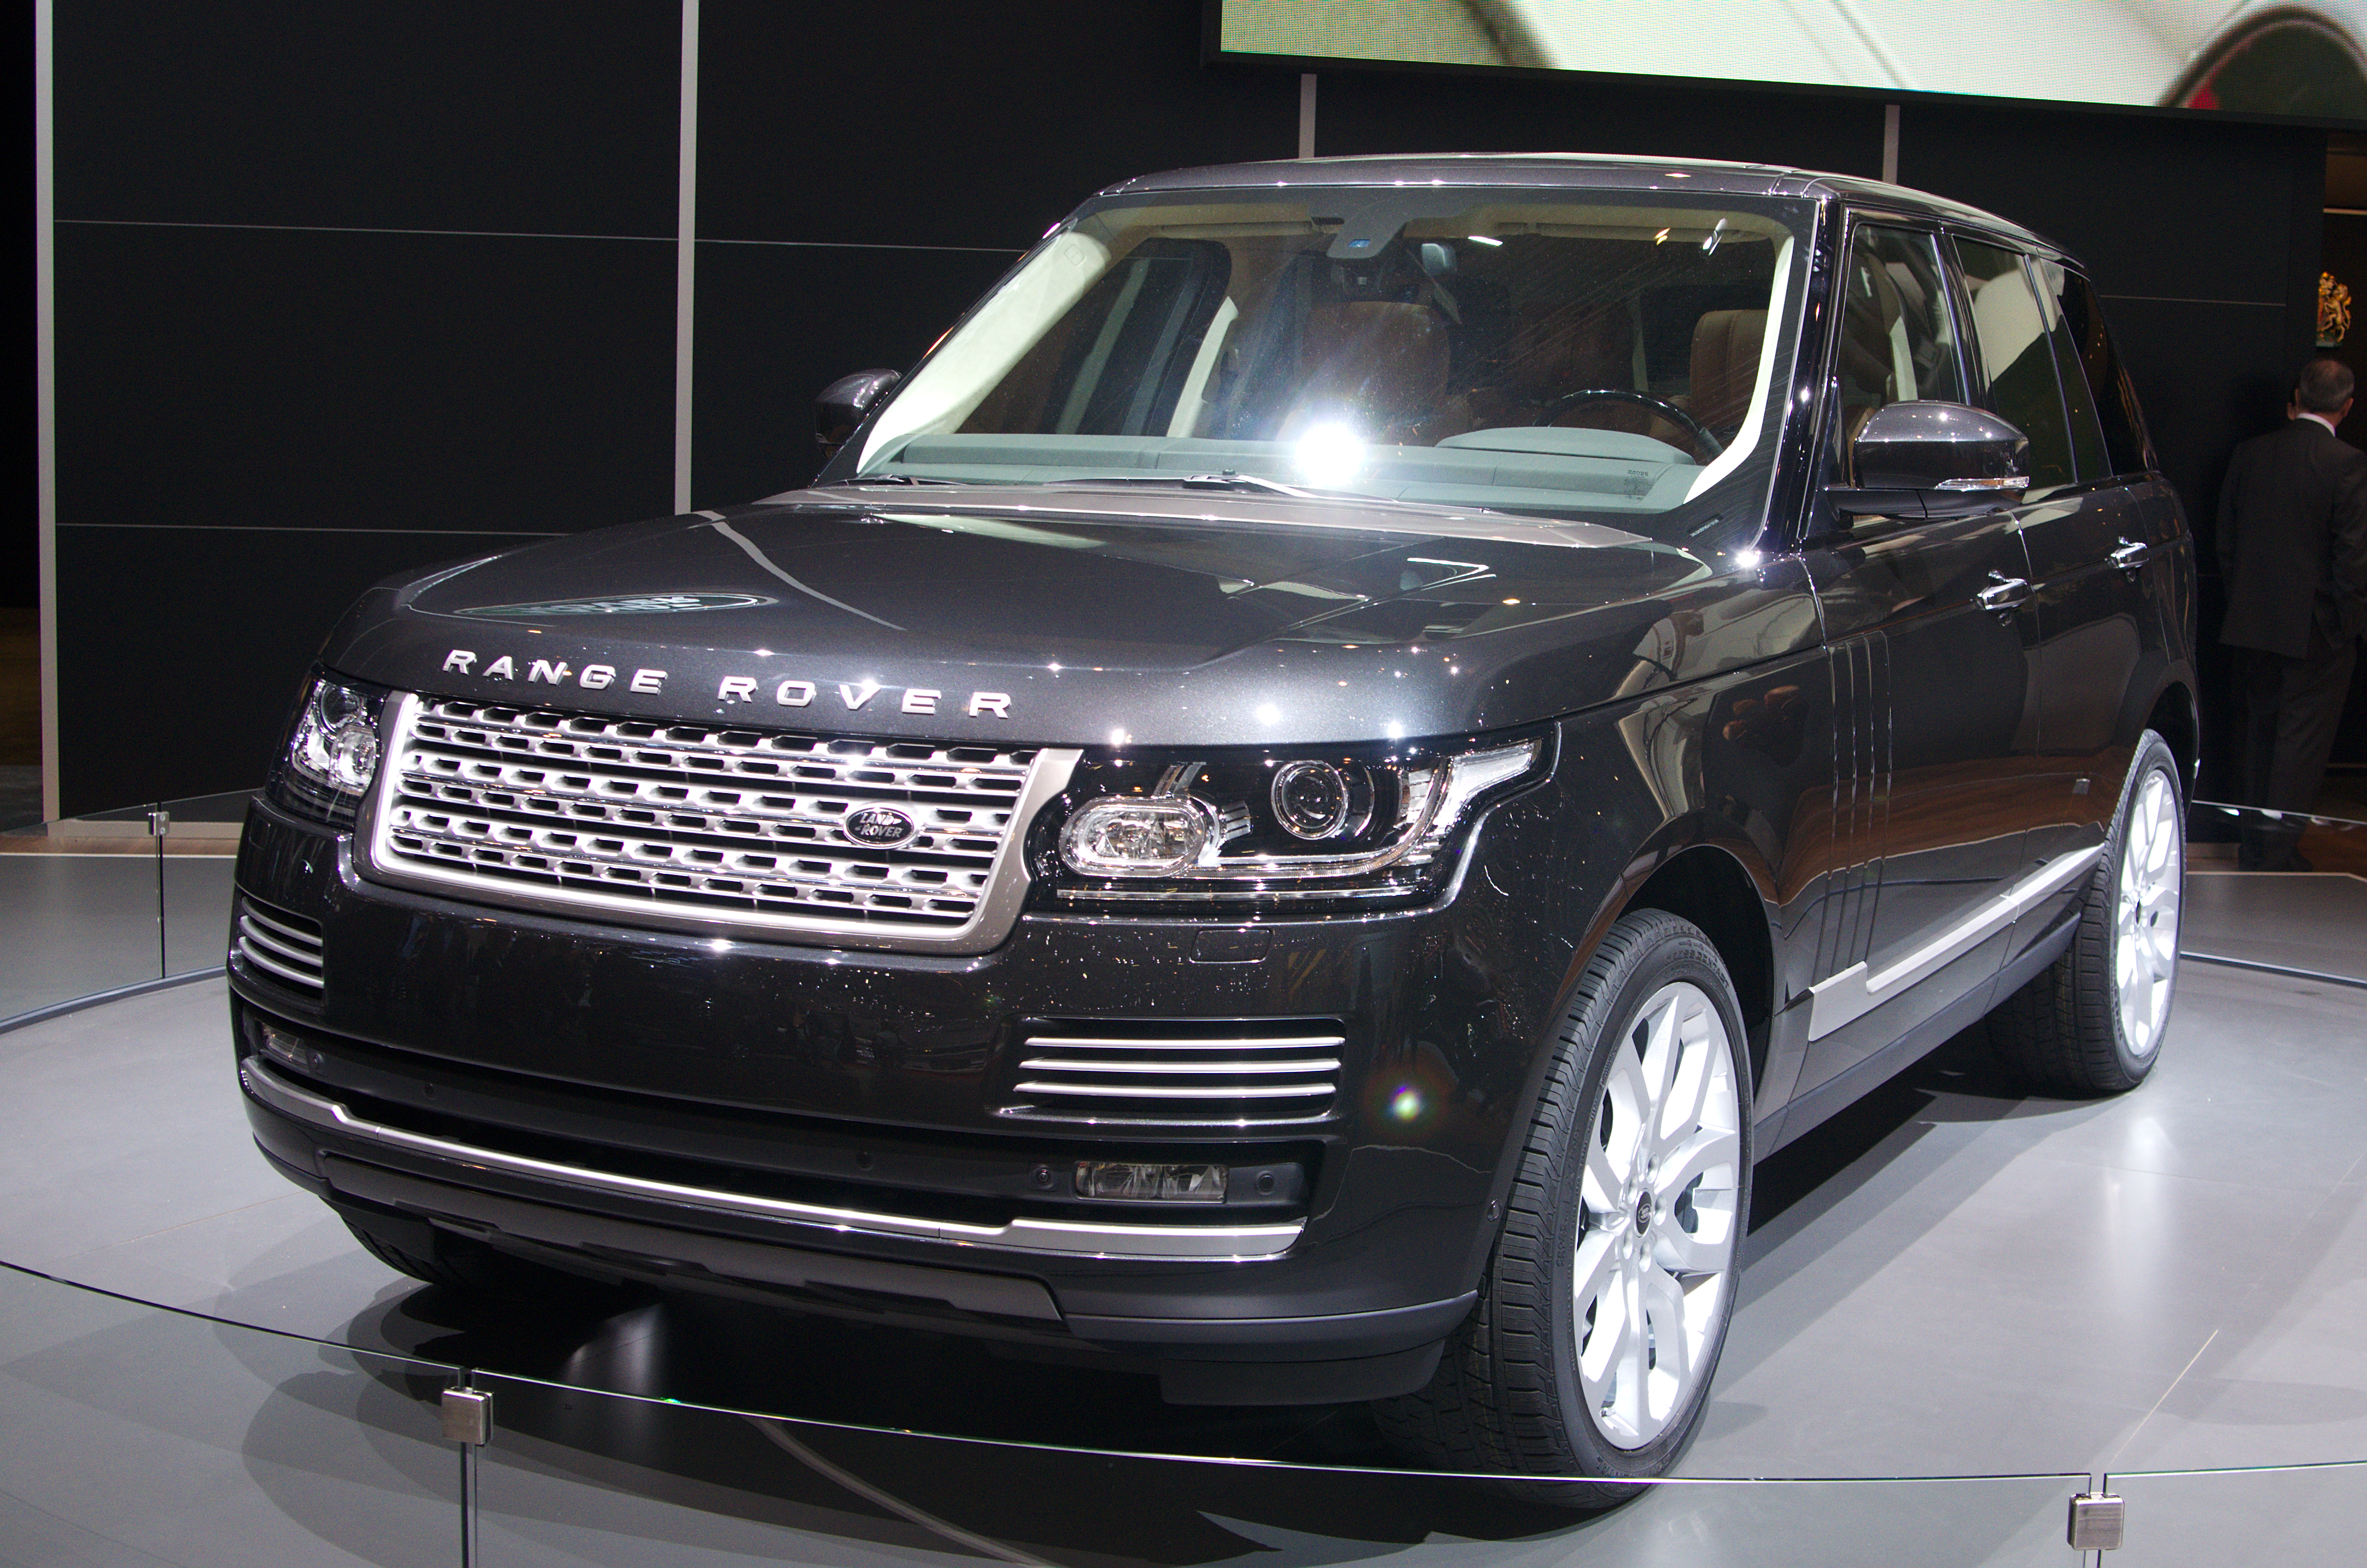 rov sport information and rover zombiedrive se range photos exterior for land sale oem landrover fq suv